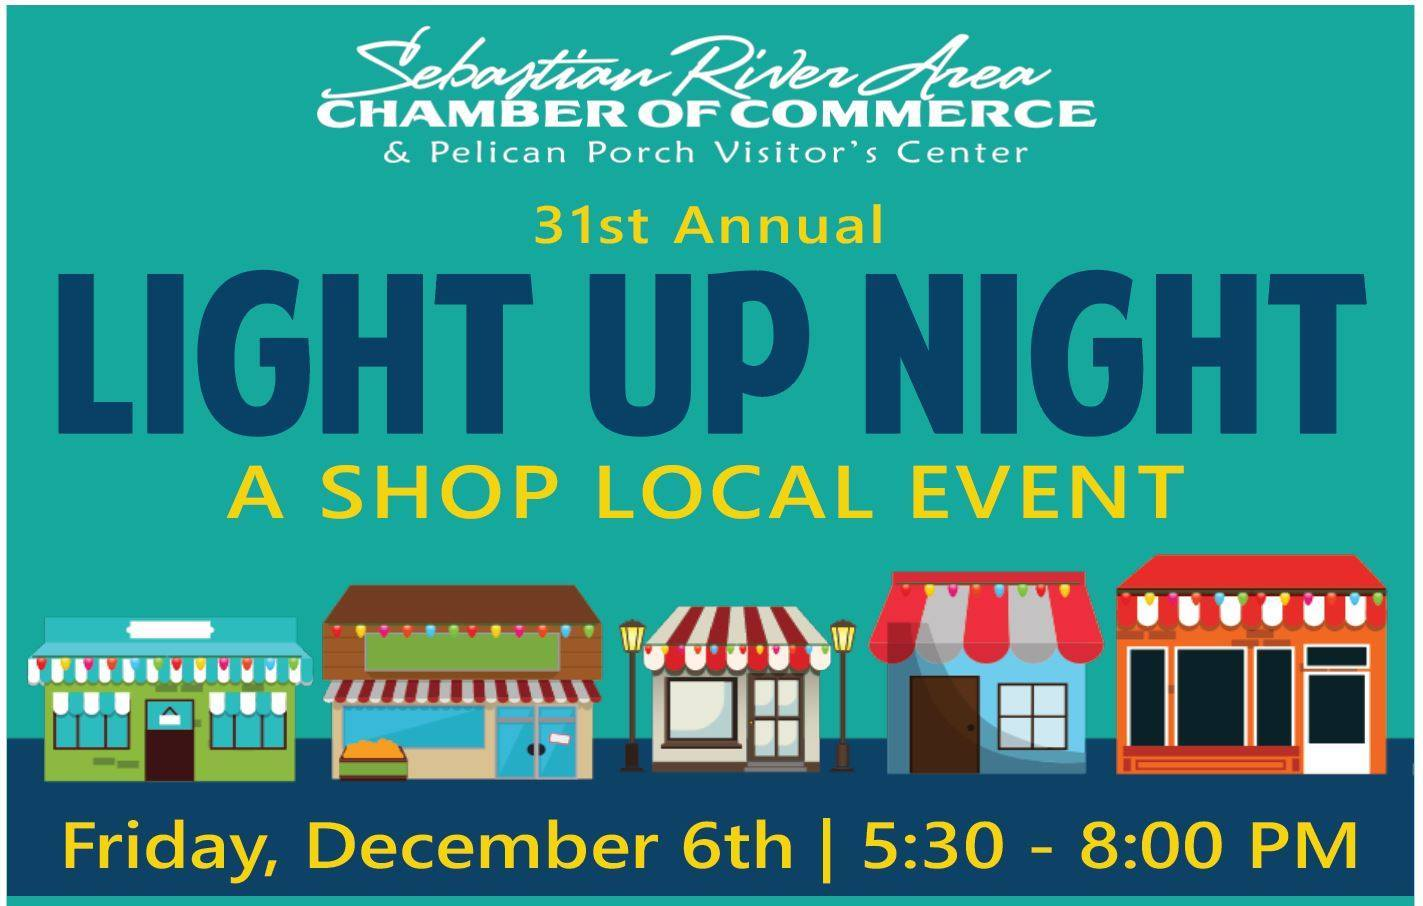 Sebastian River Area Chamber of Commerce's Annual Light Up Night